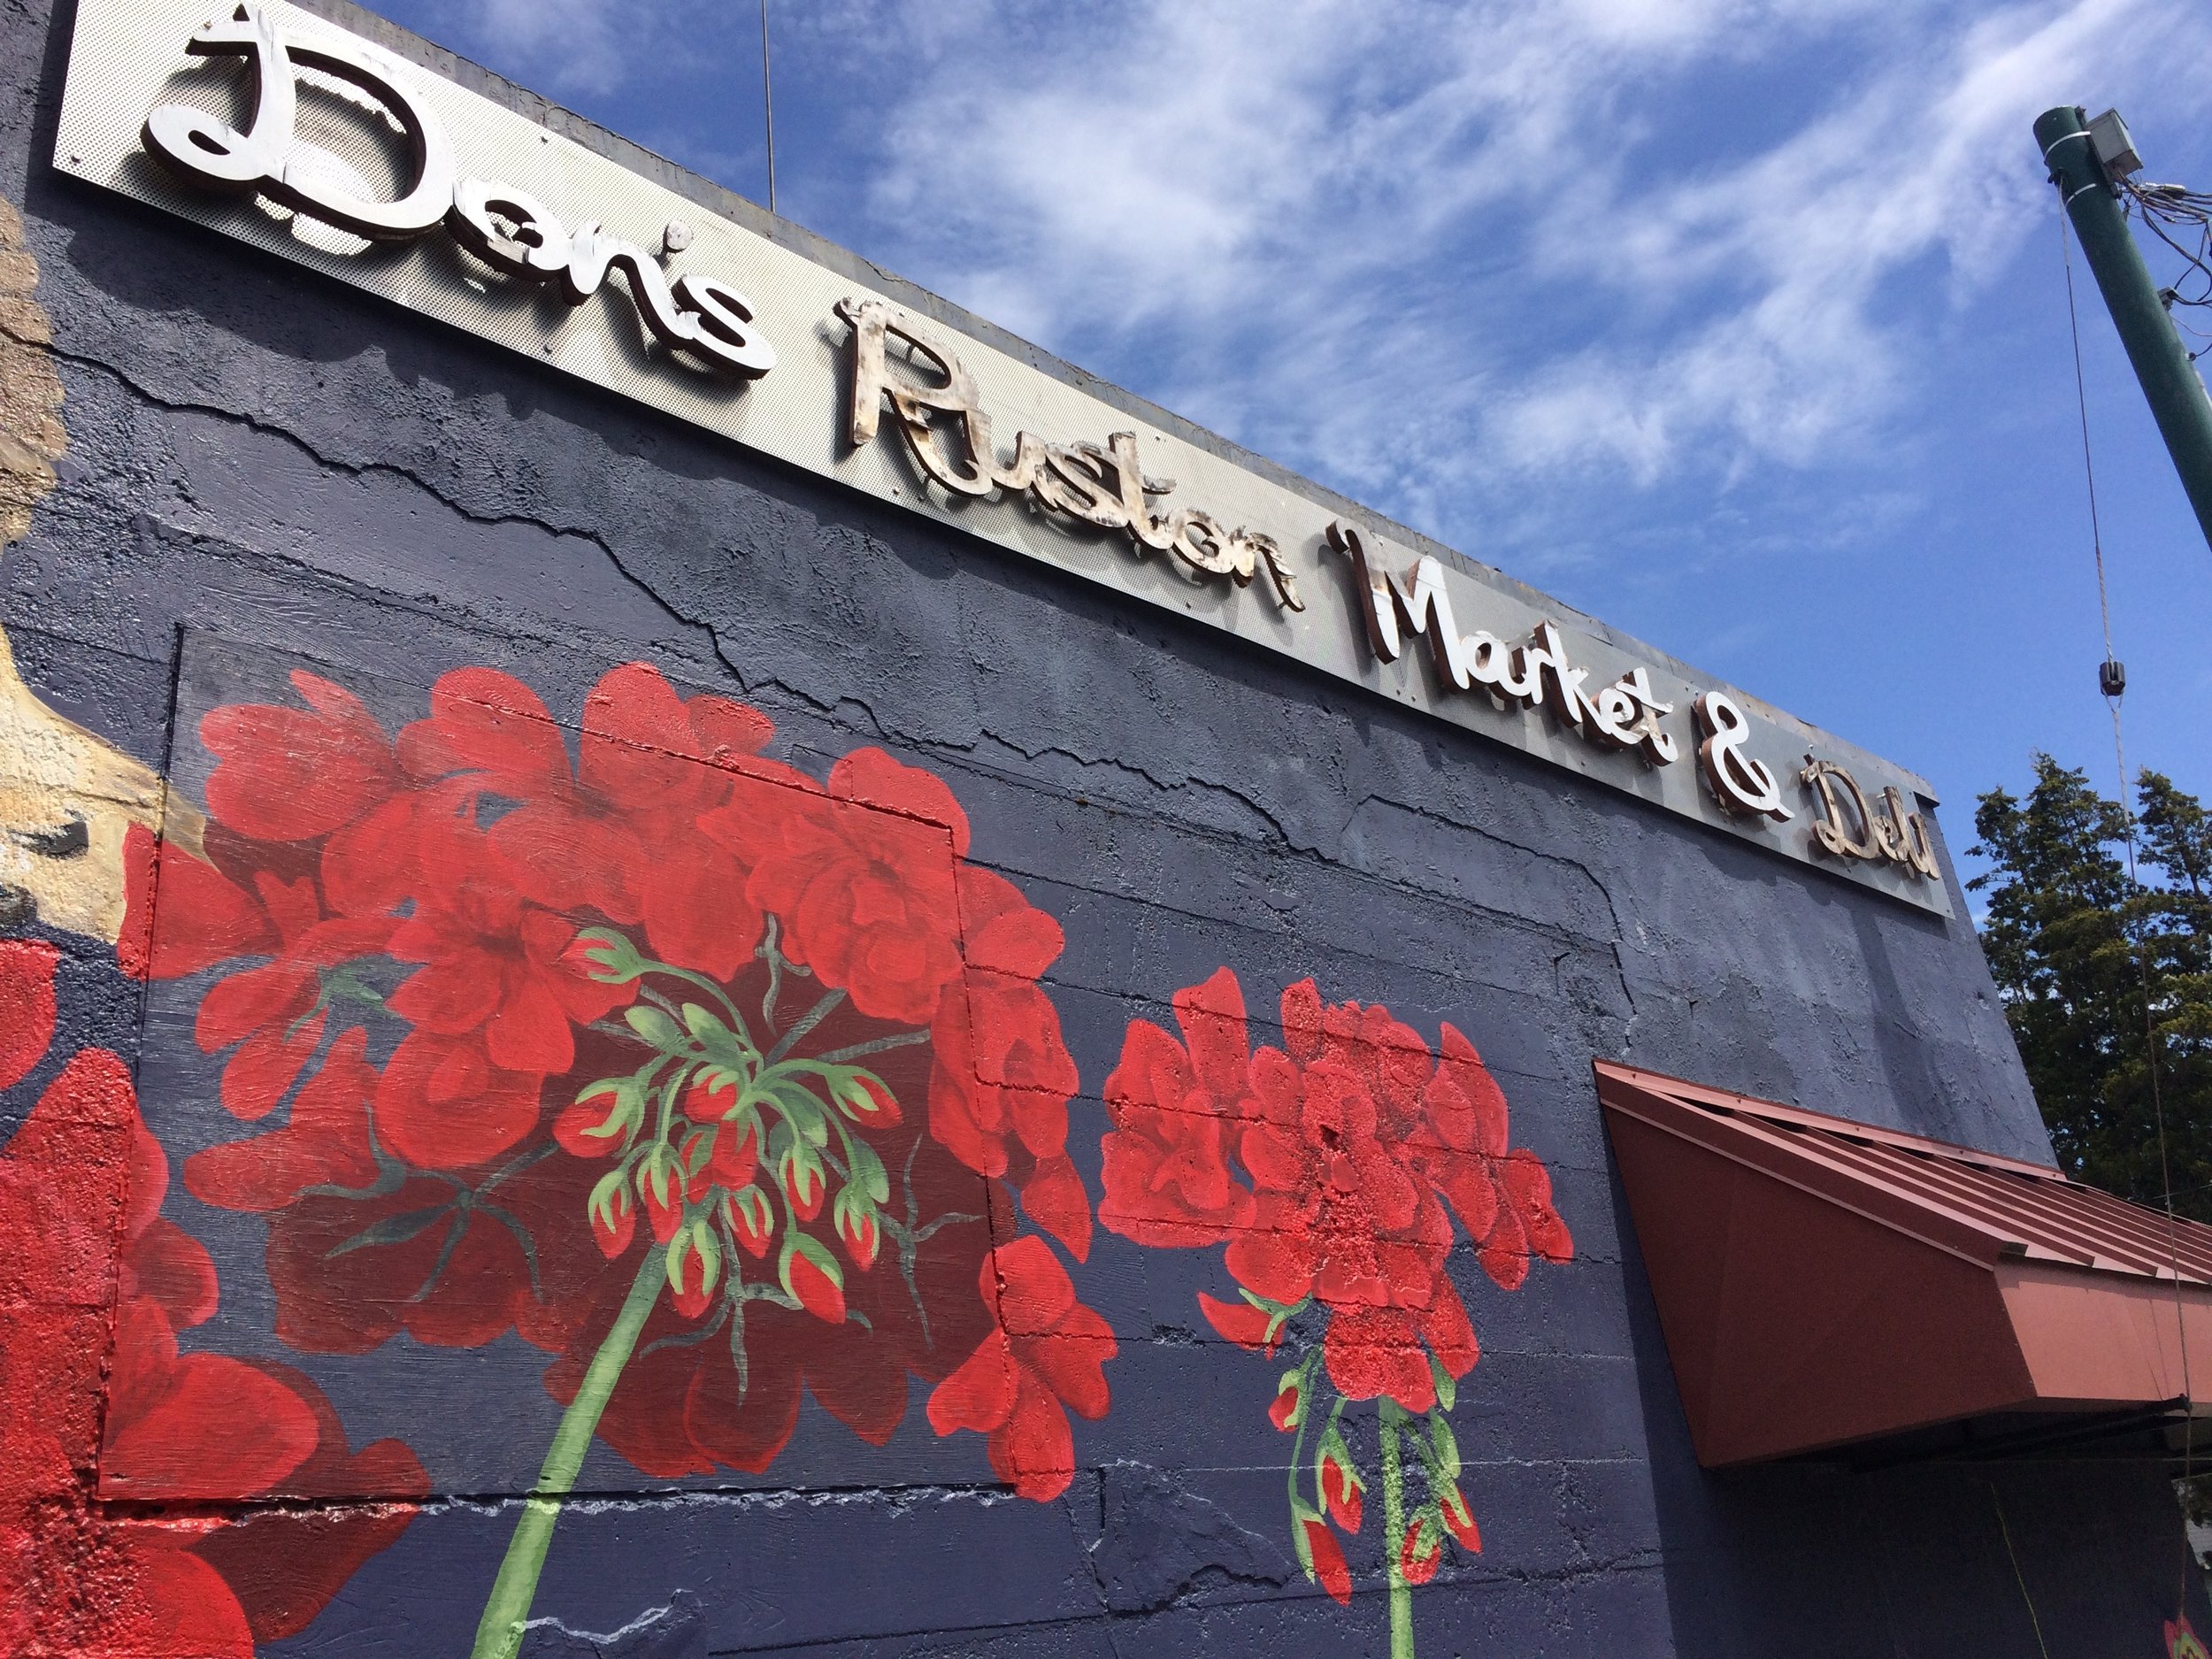 Serving Ruston since 1983, Don's Ruston Market & Deli offers an old fashioned soda fountain experience. Don't forget your ice cream cone!